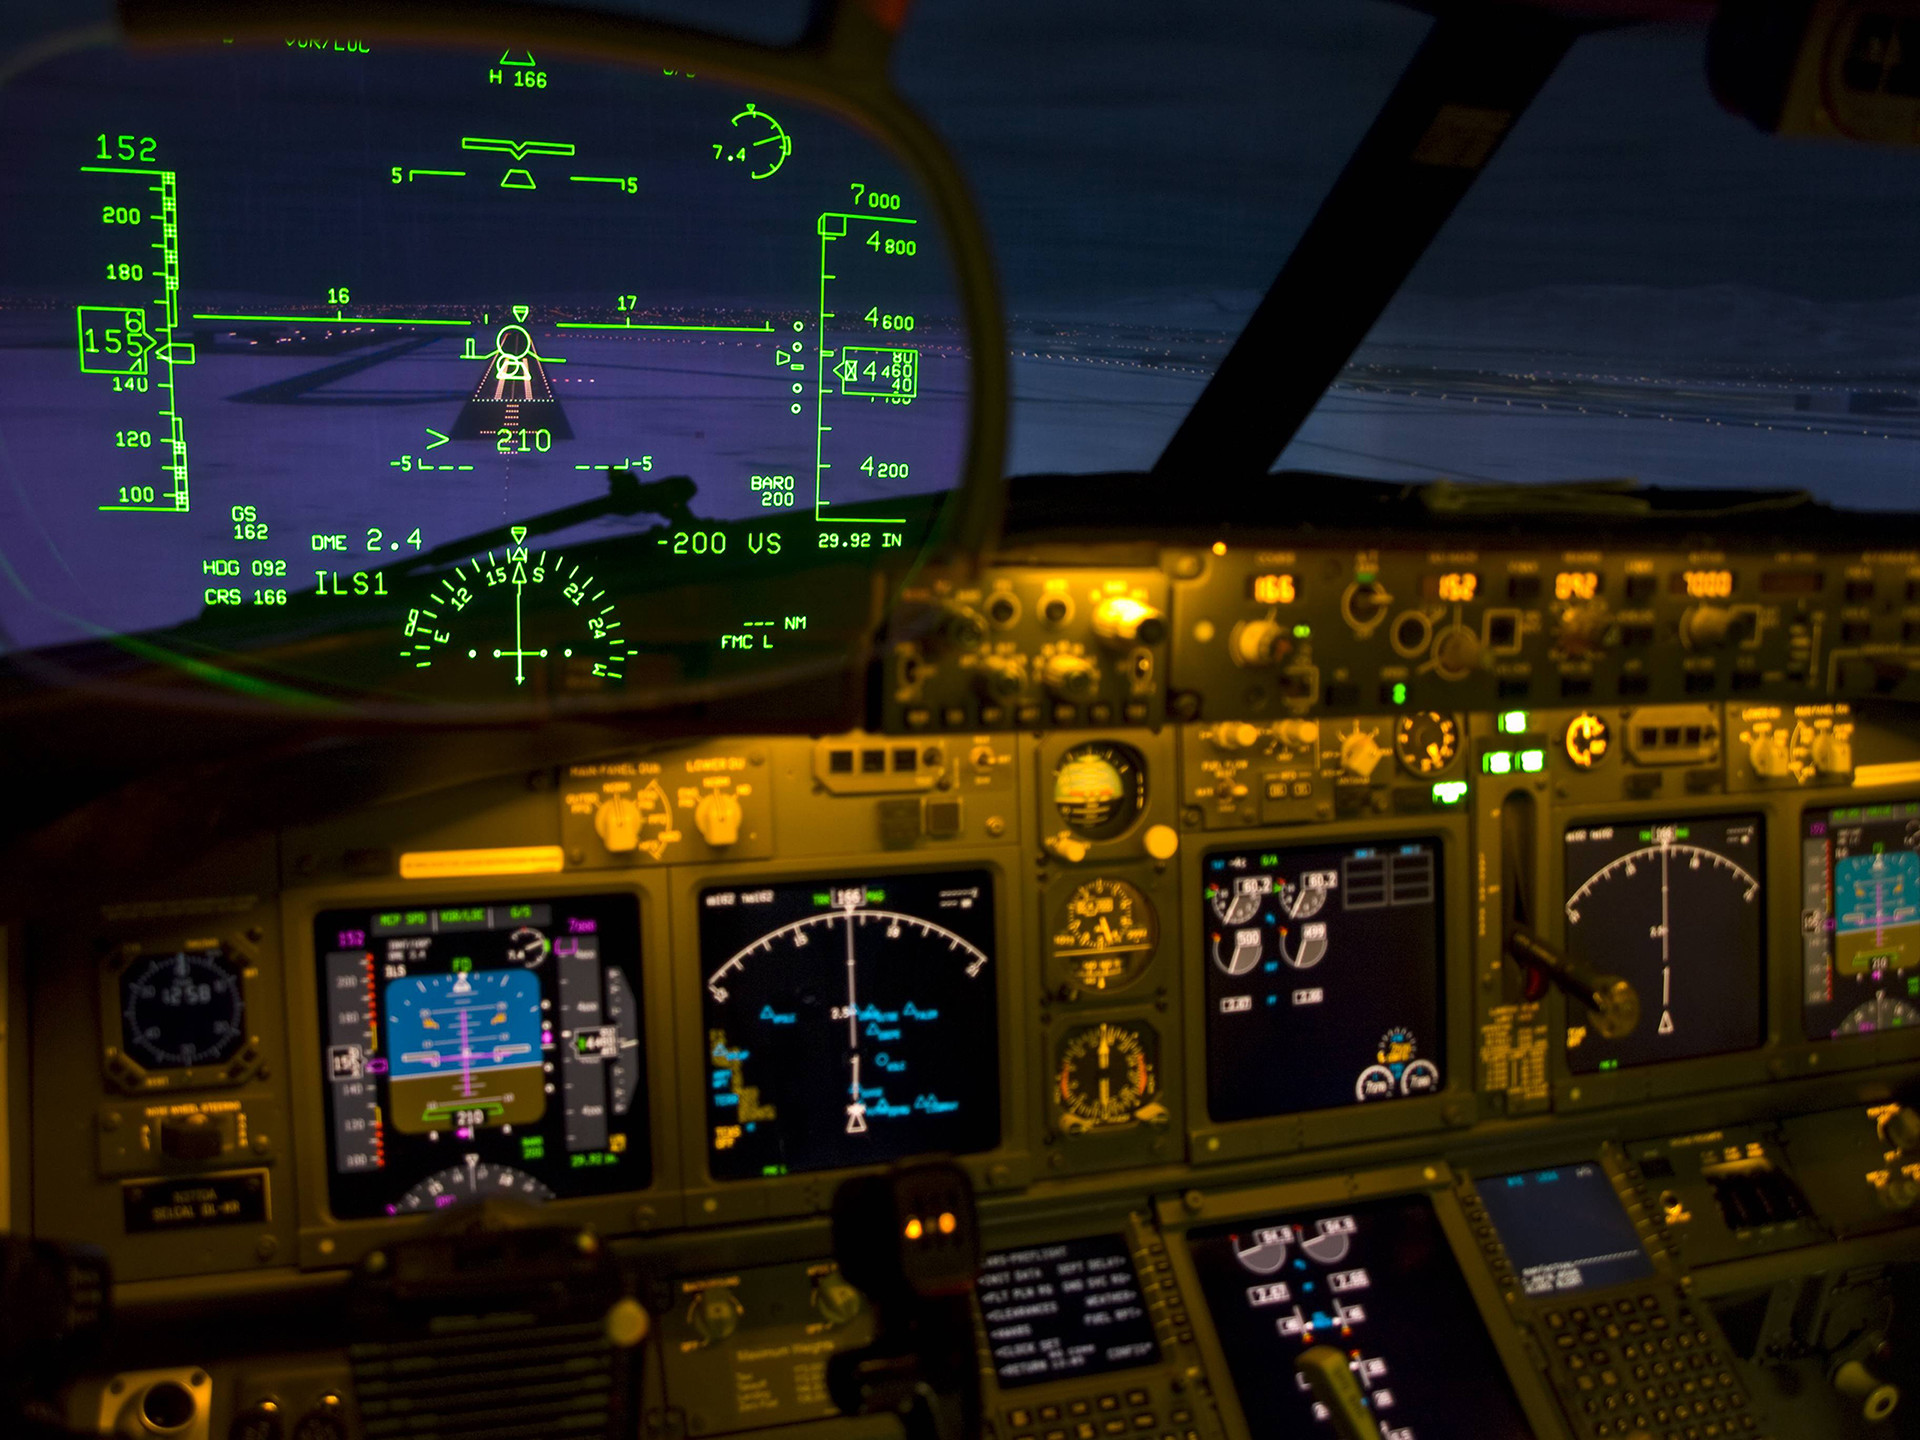 Airplane Full Hd Wallpaper Airplane Cockpit Wallpaper Hd 73 Images